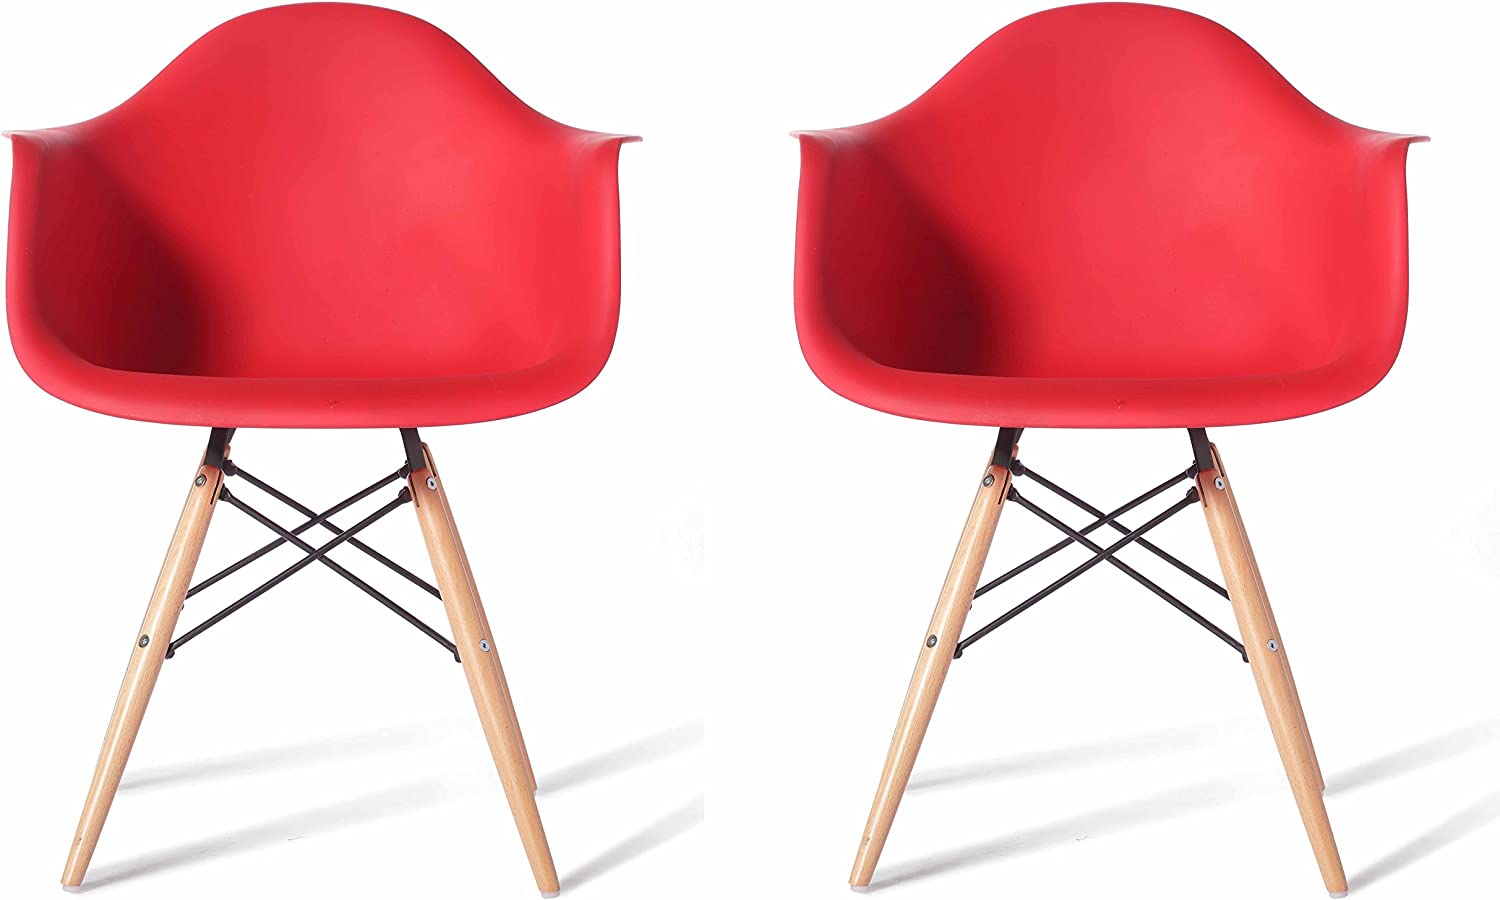 Meubles House S2-PC-0119-R Mid-Century Modern Eiffel Style Kids Bucket Chair with Chrome Legs (Set of Two), Red